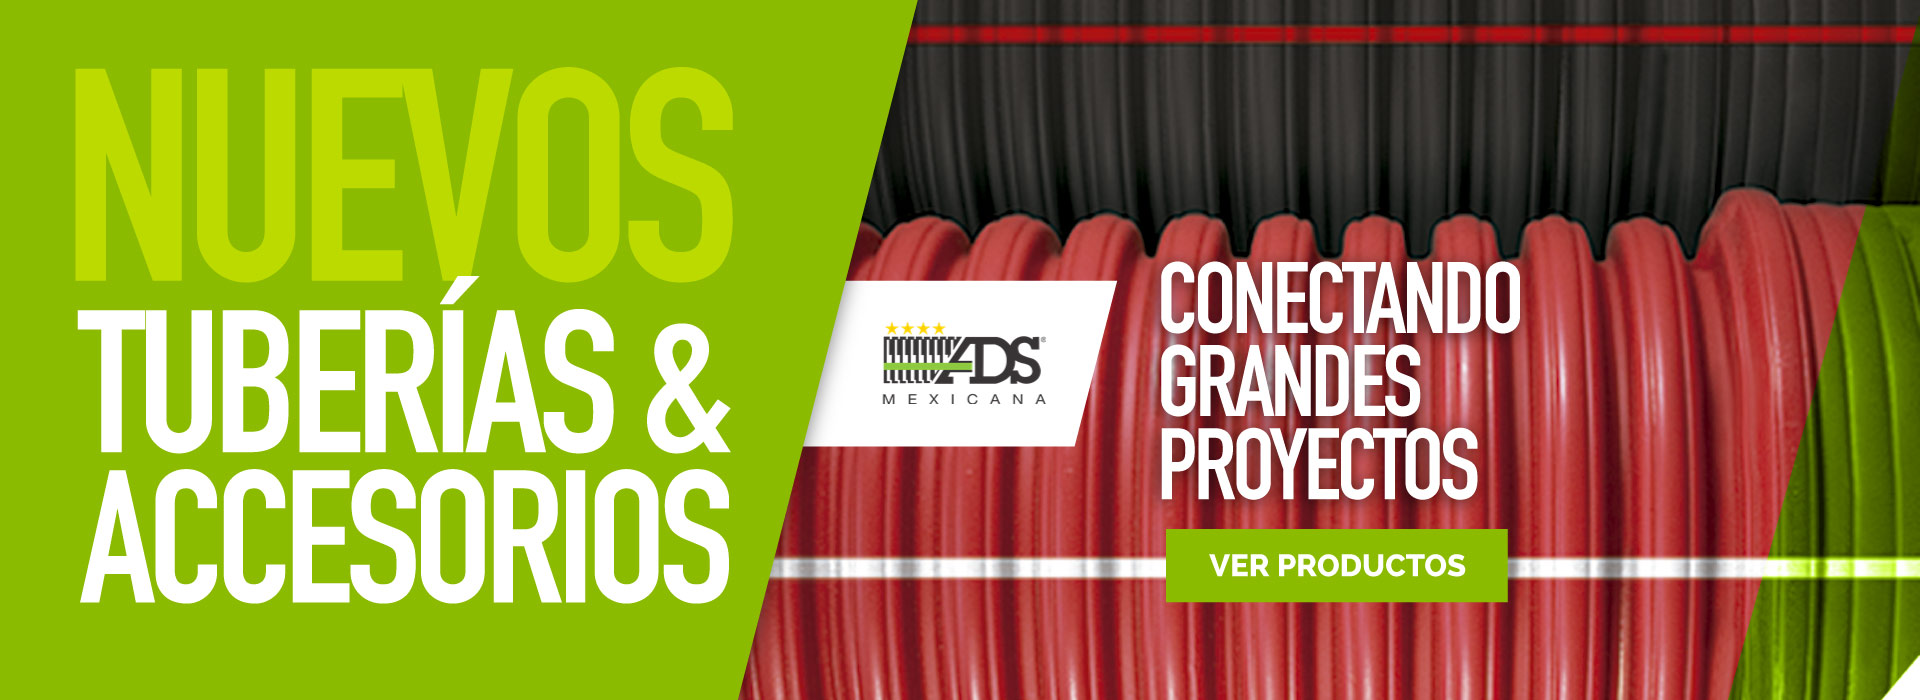 banners-yunfer-ads-mexicana-tuberias-accesorios-industriales-residenciales